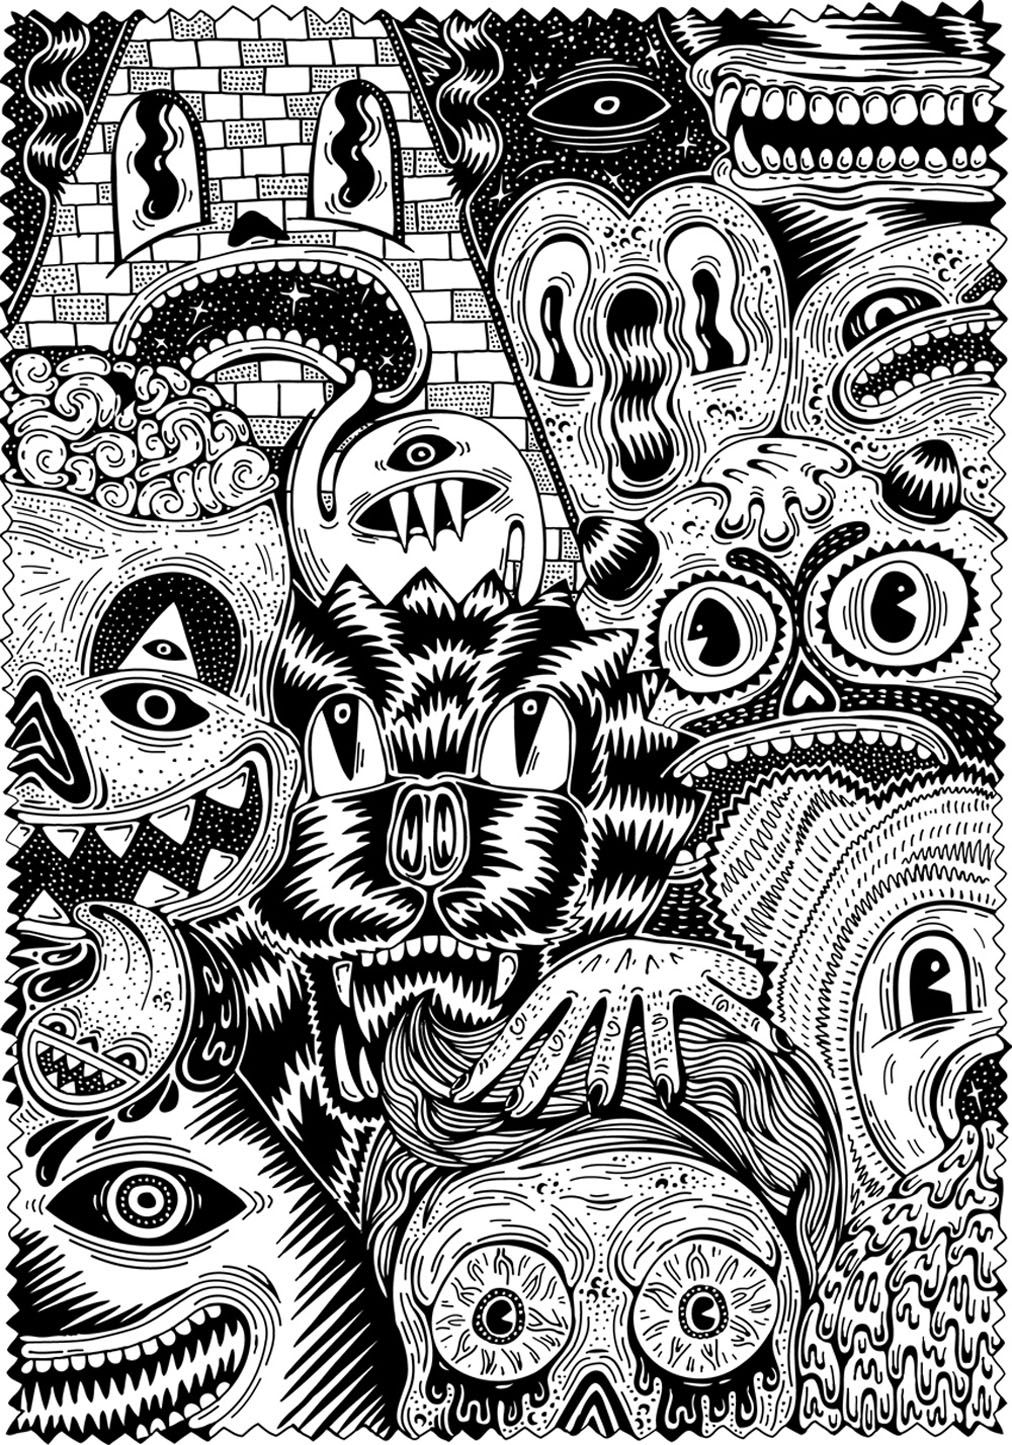 Free coloring page coloringforadult7. Warning scary